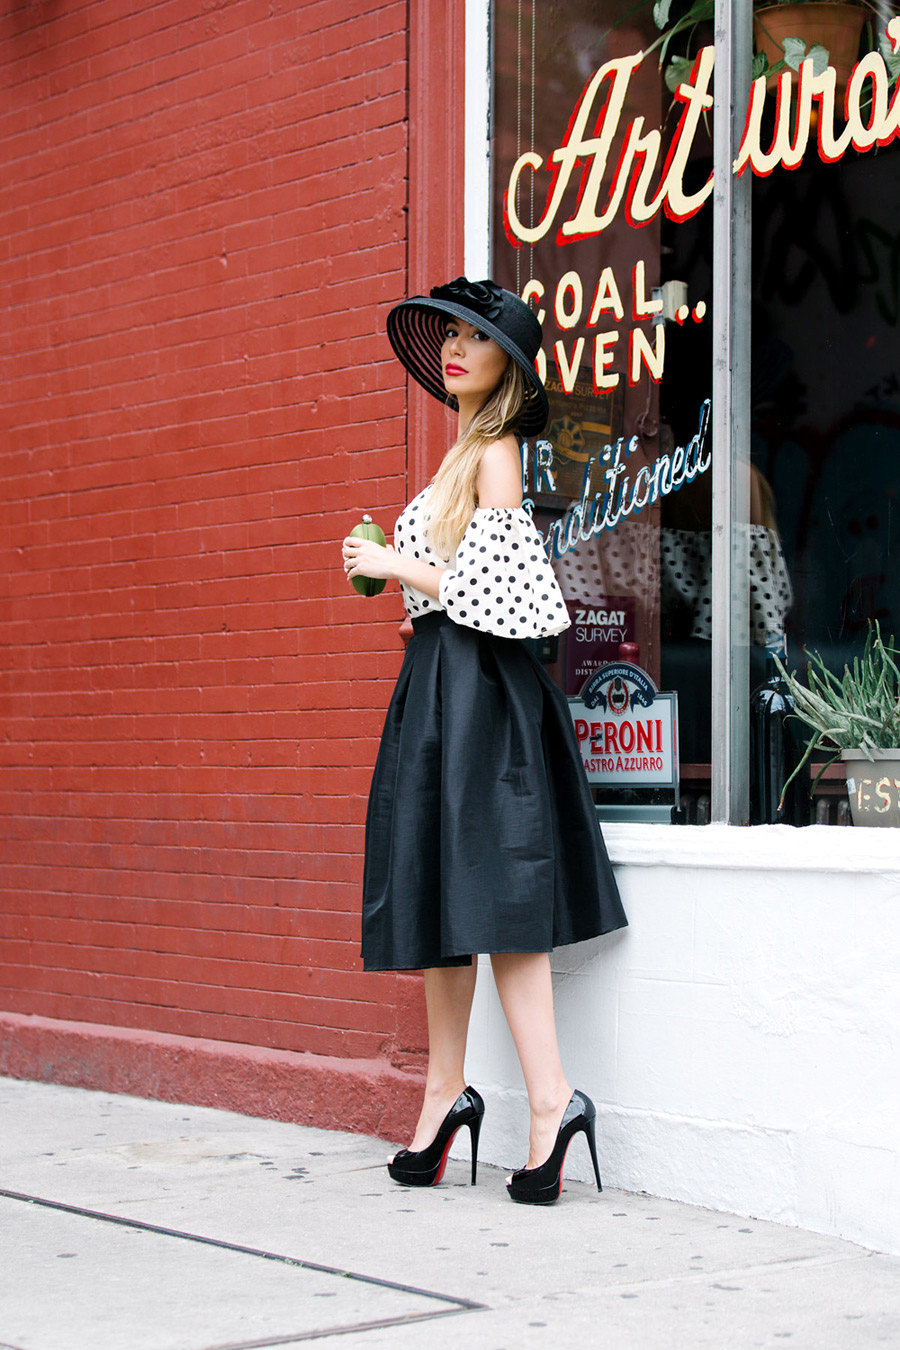 Amazing elegant classy look worn by NYC blogger Ulia Ali. Pastiche of Old Hollywood star. Ascot inspiration.